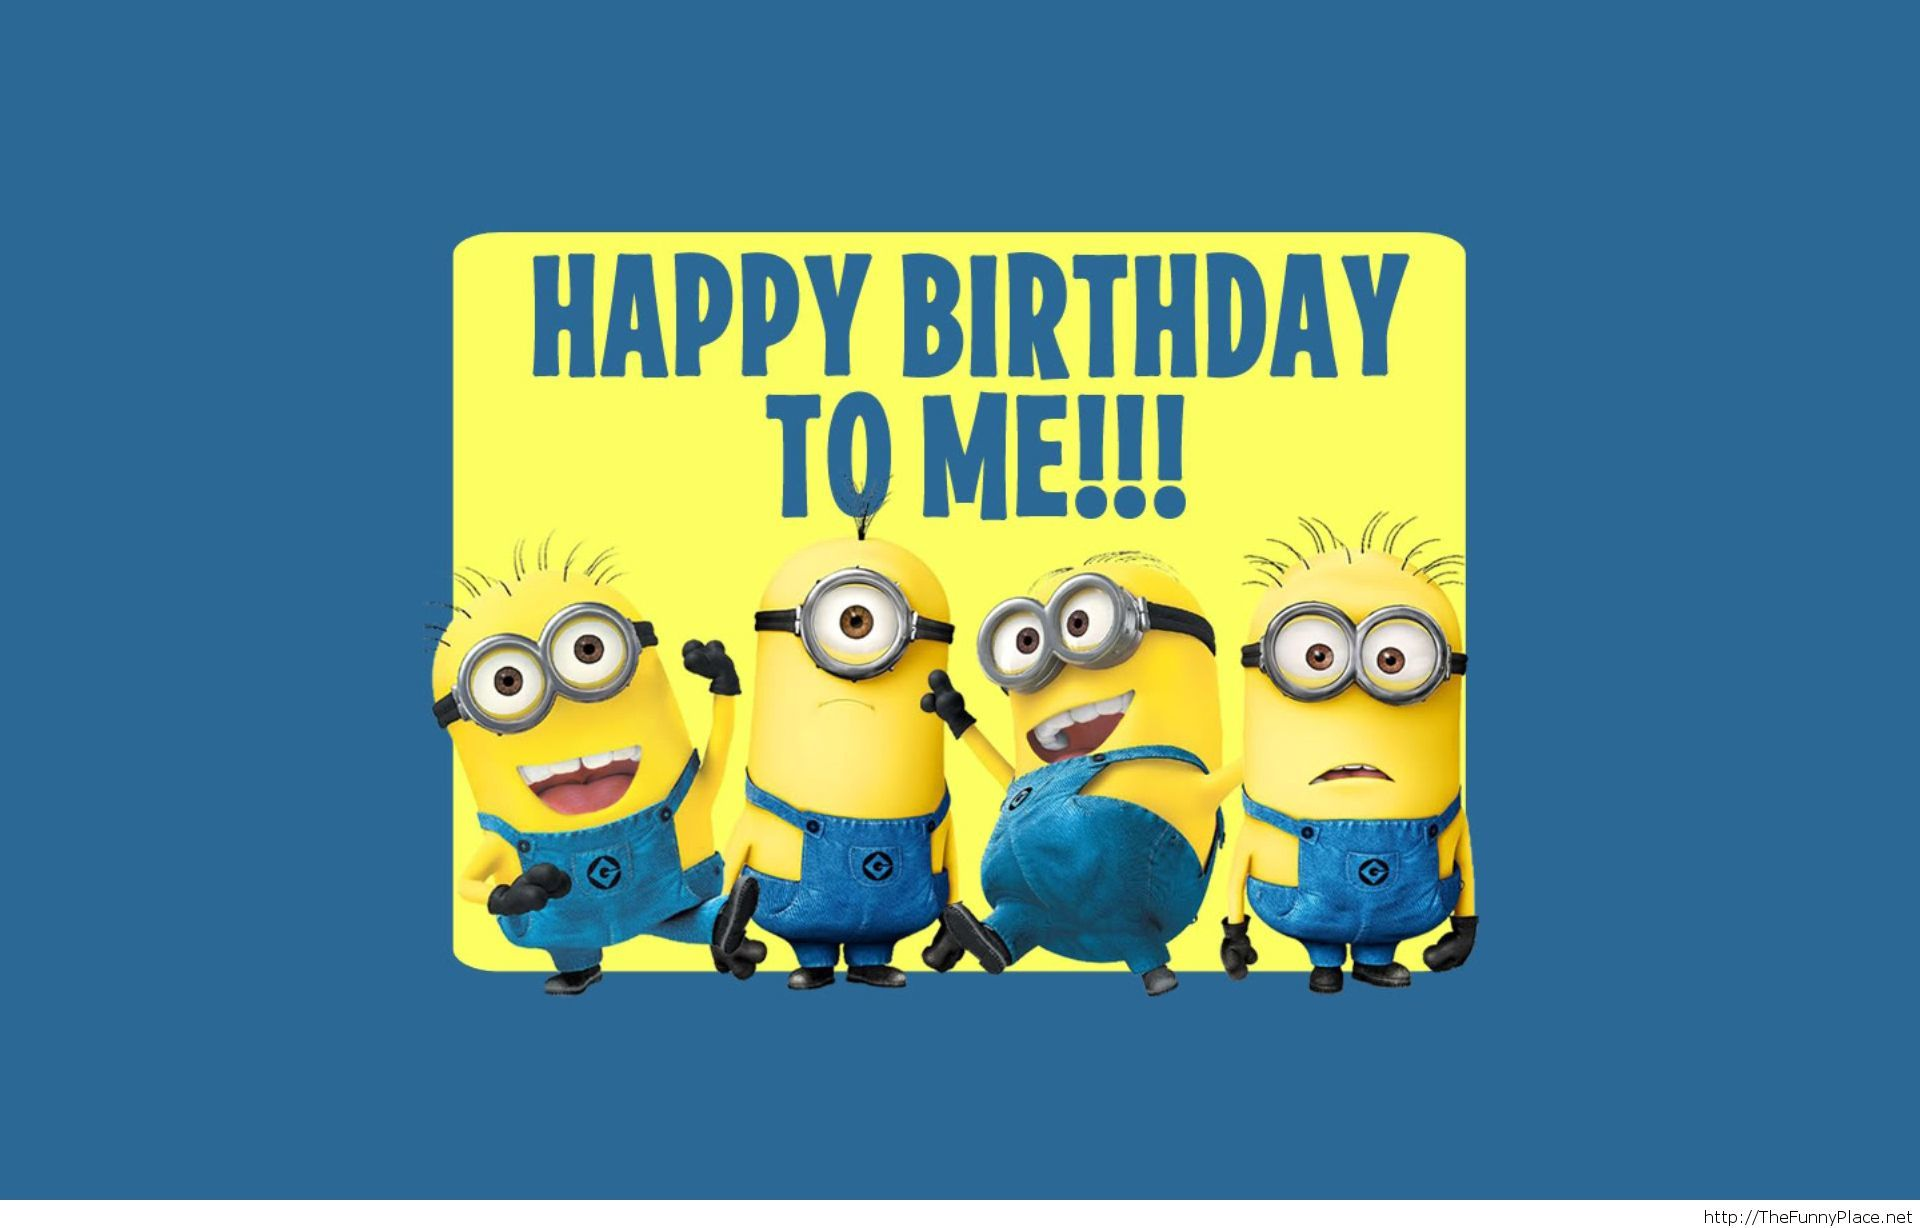 Happy birthday to me minions saying